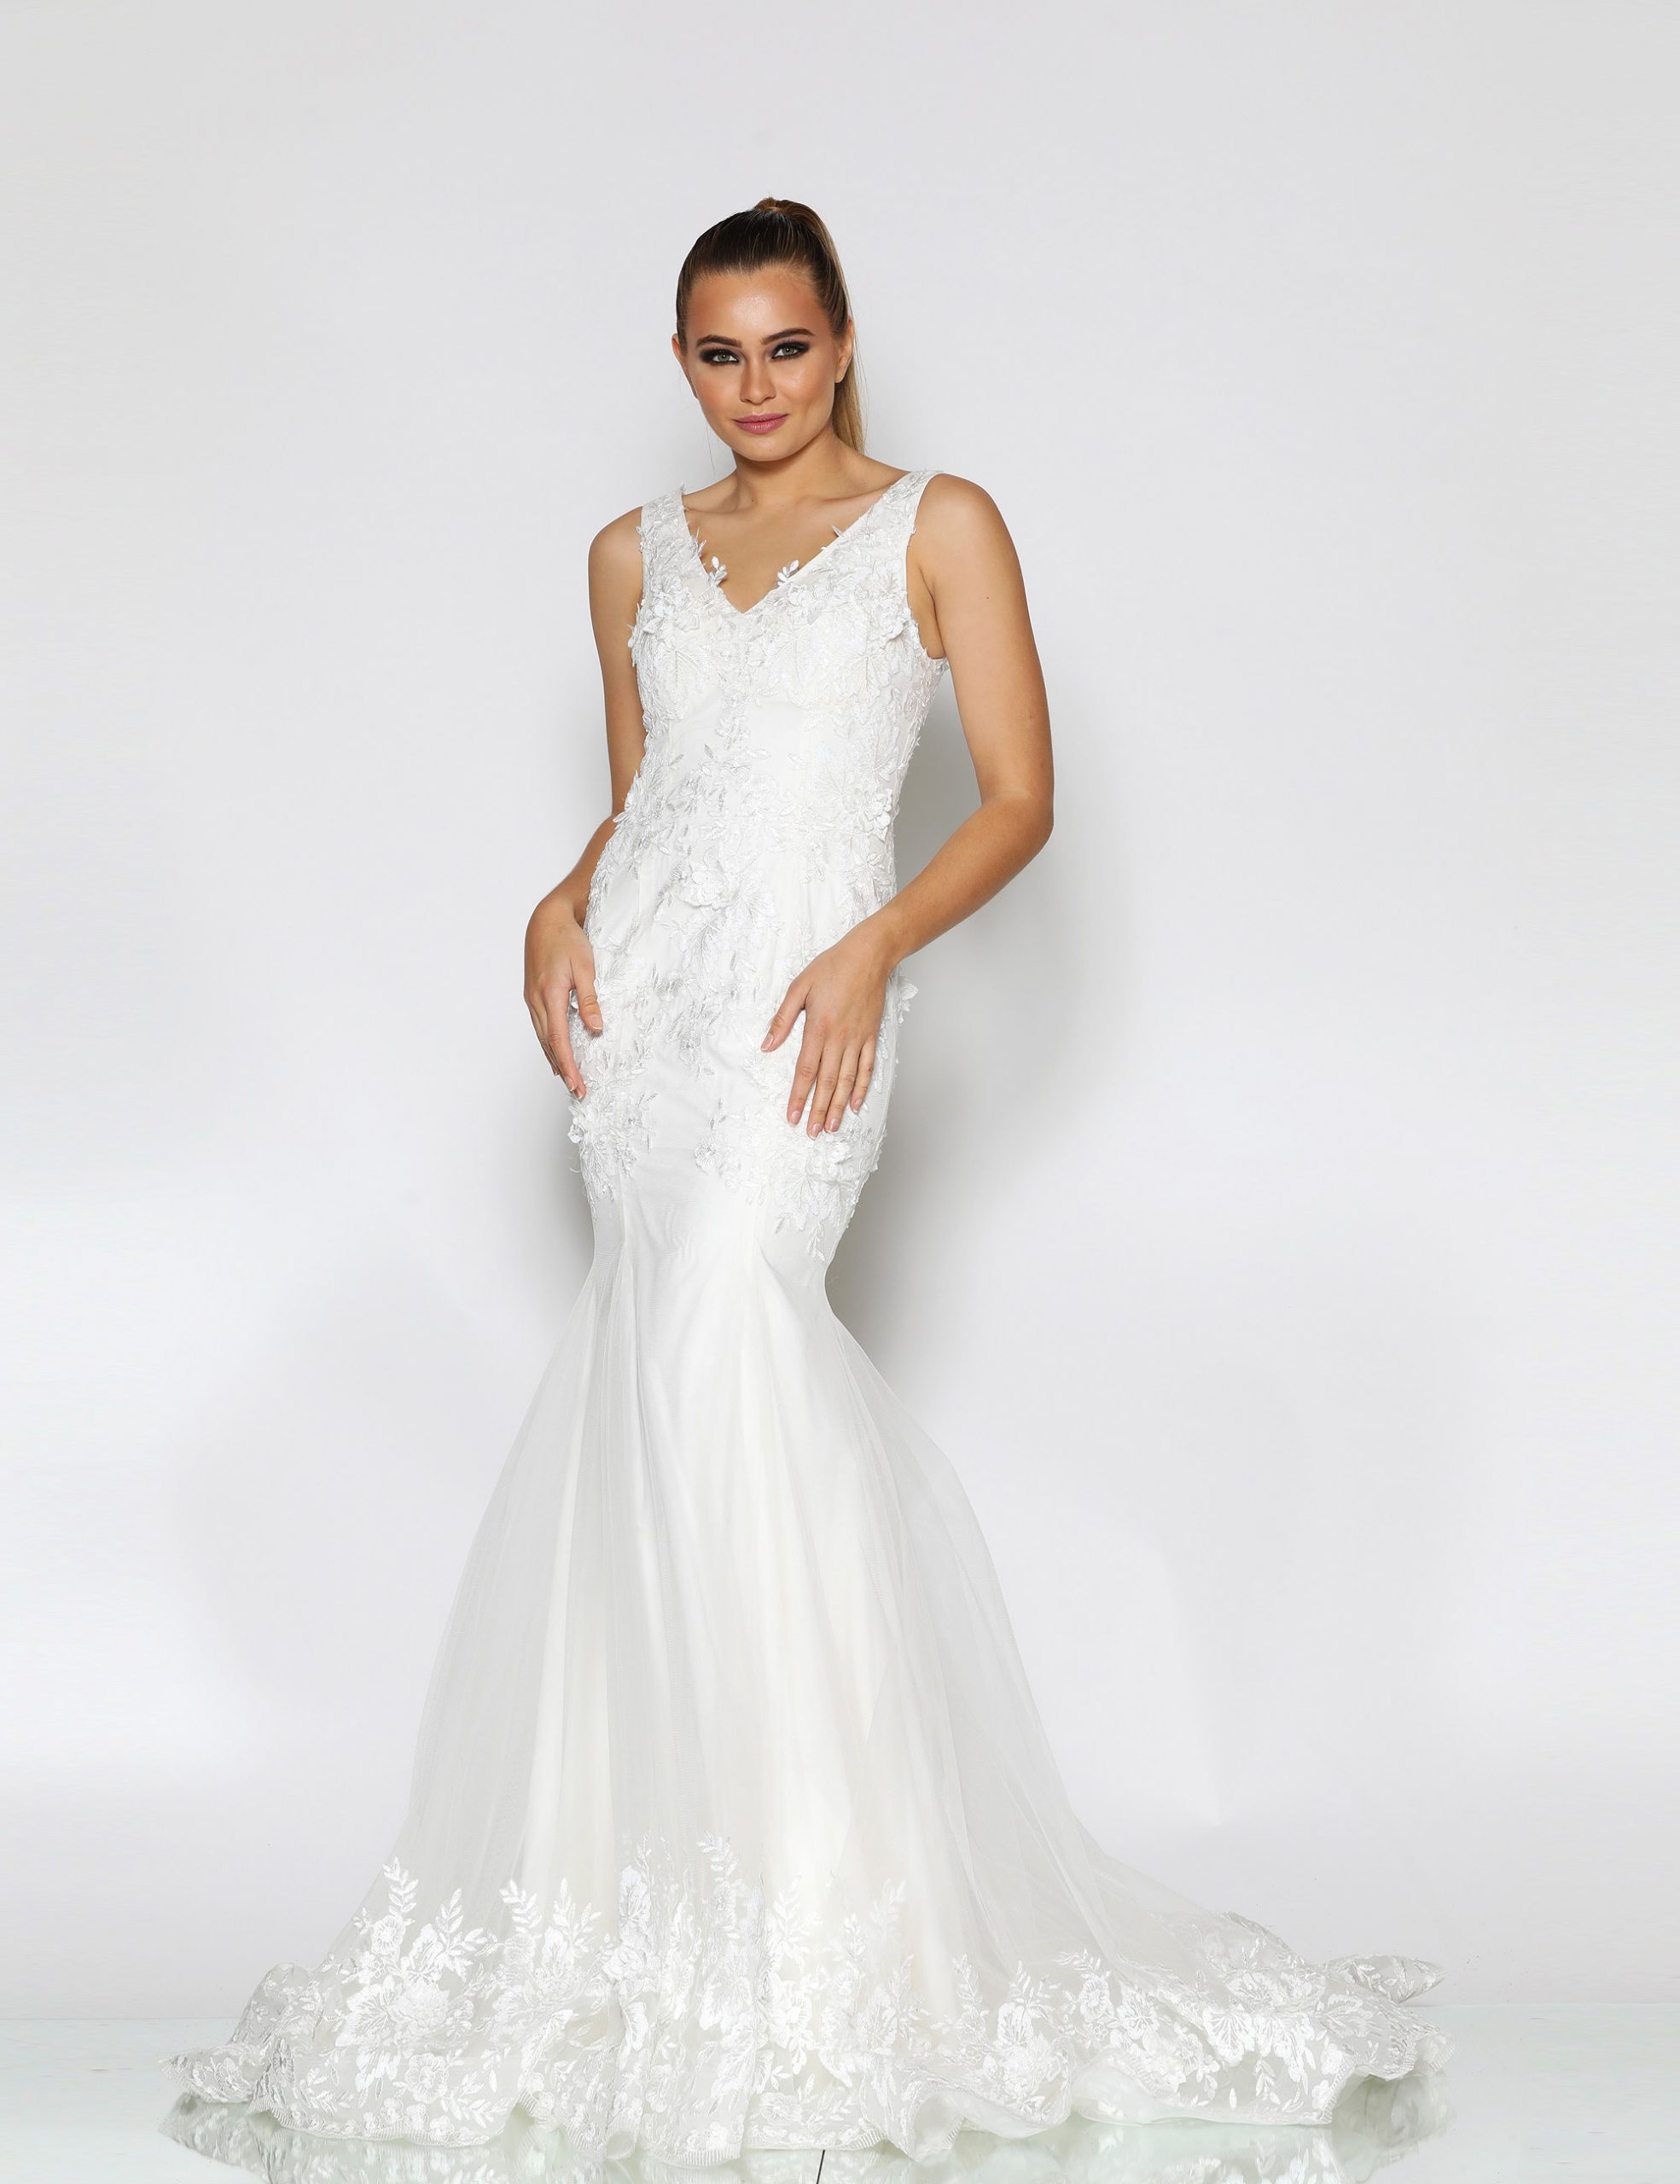 weddingdress21